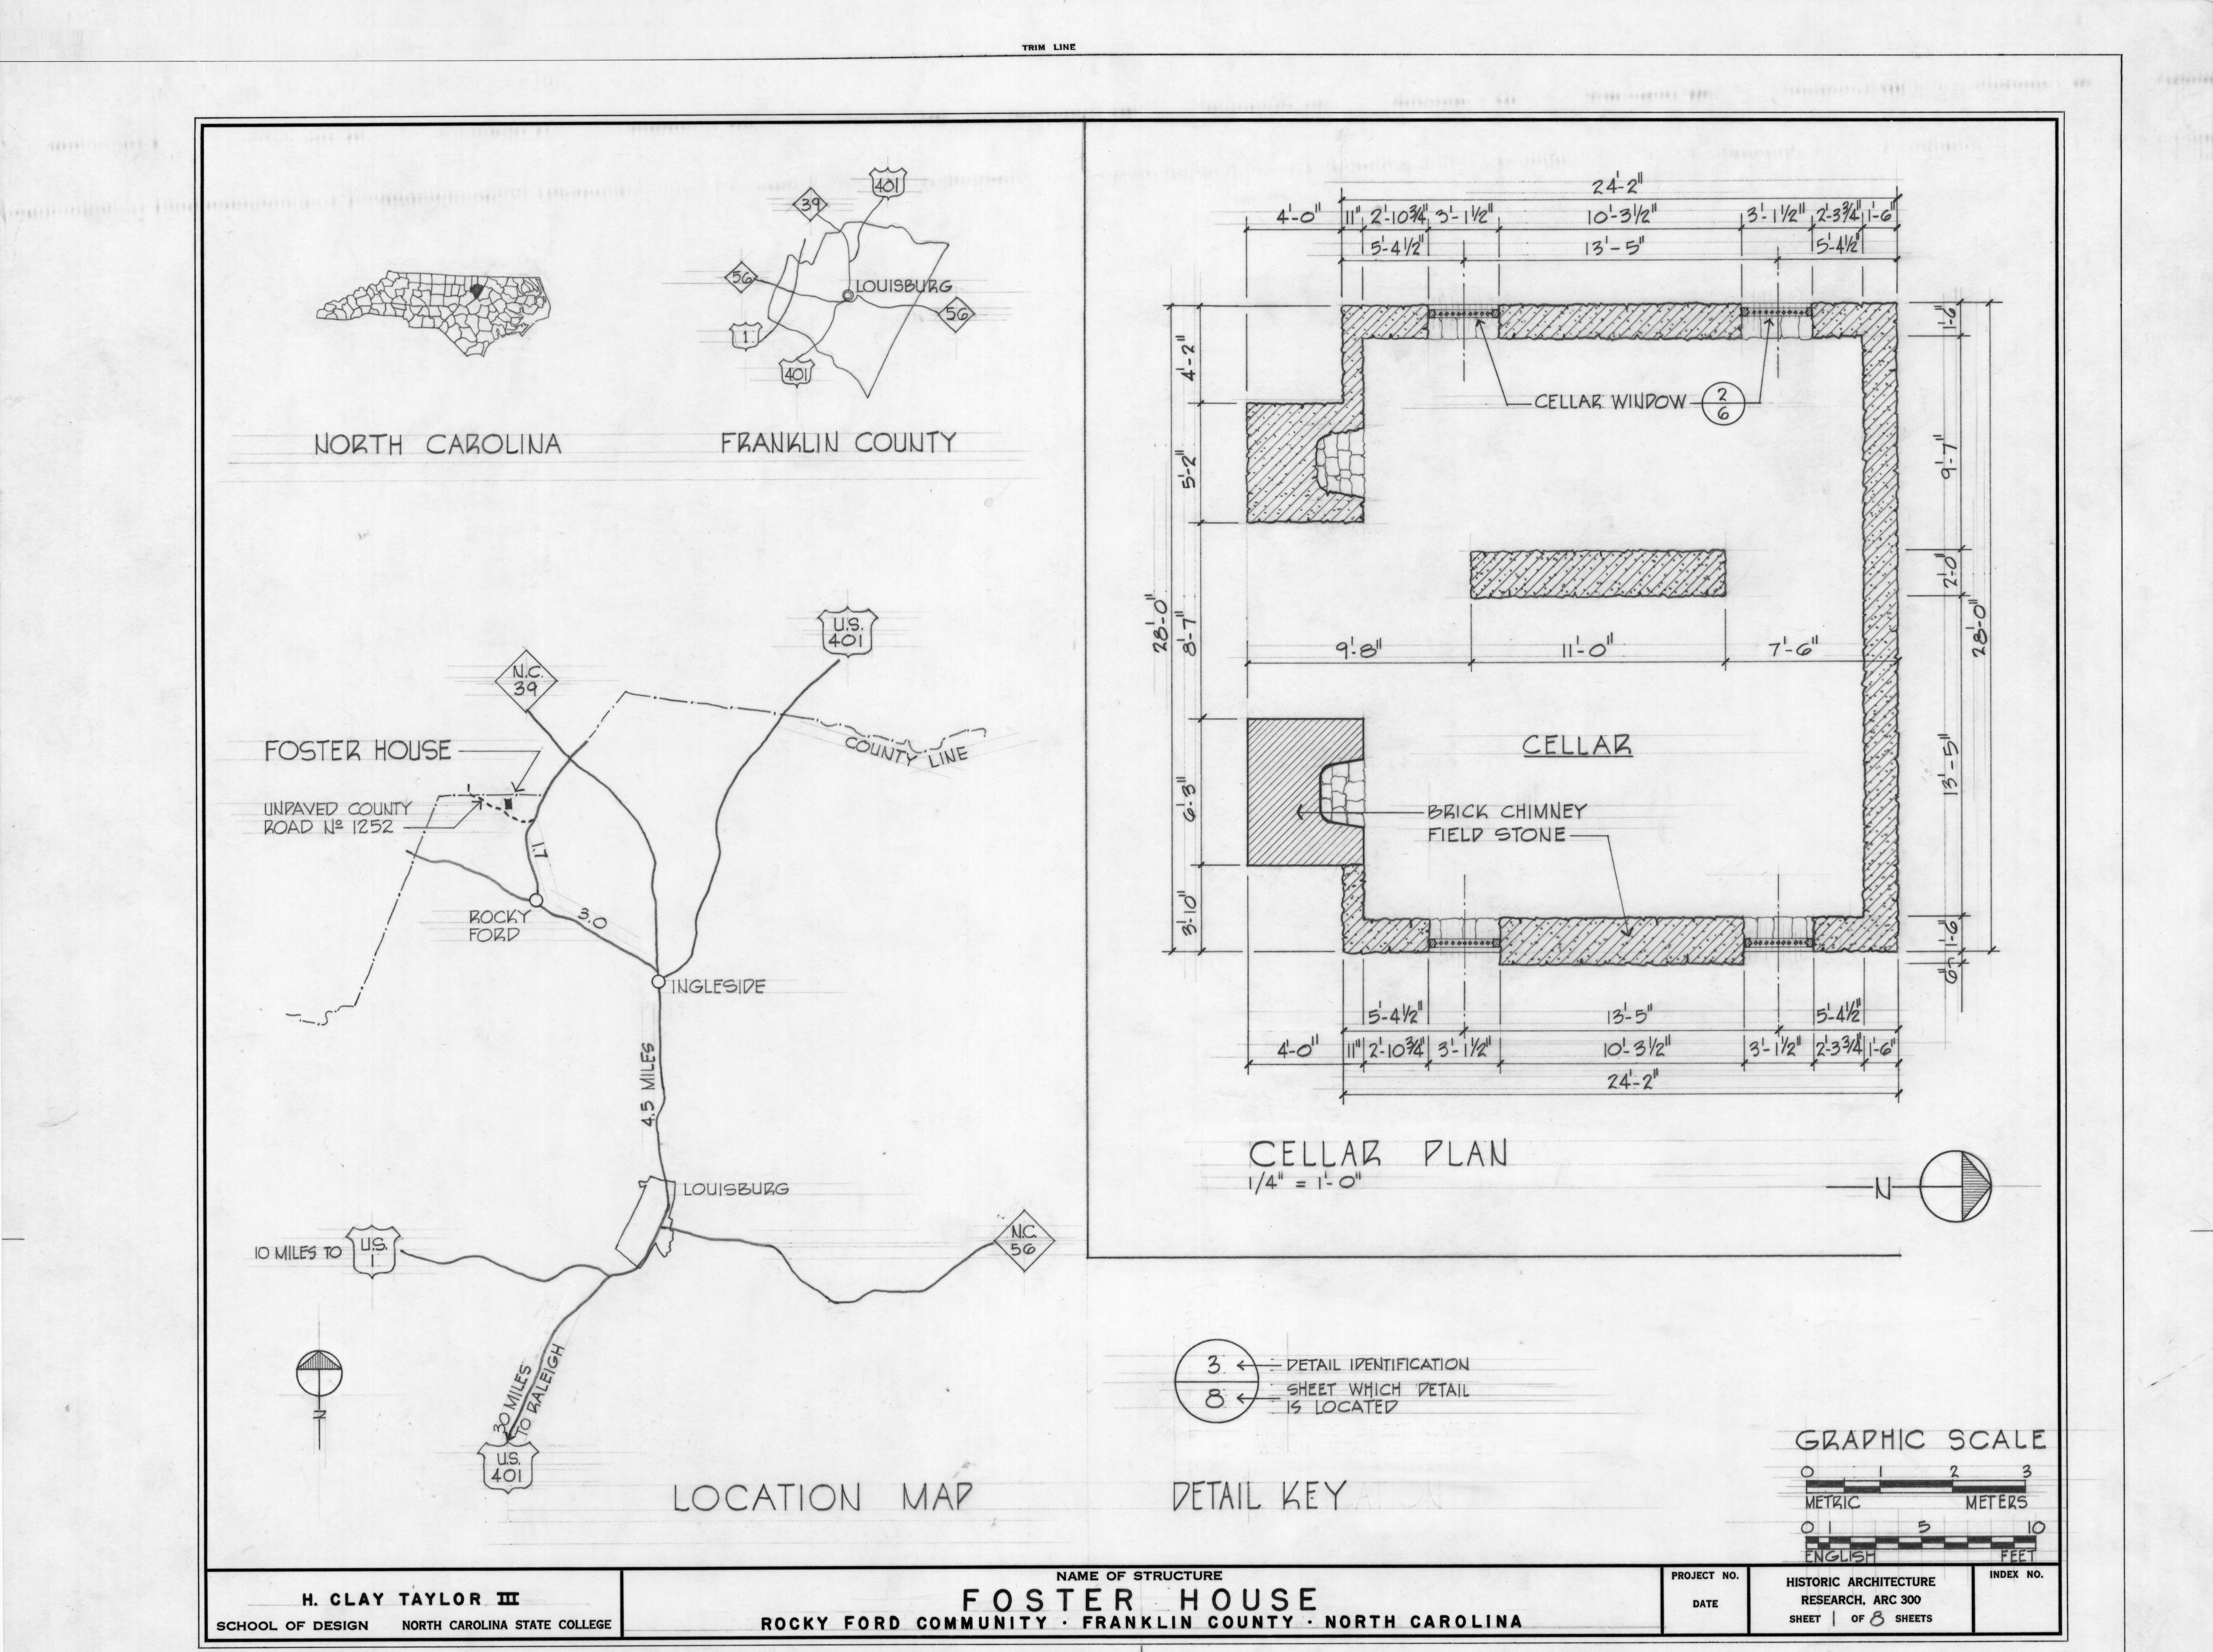 Location map and cellar plan, Solomon Ruffin Perry House, Franklin County, North Carolina